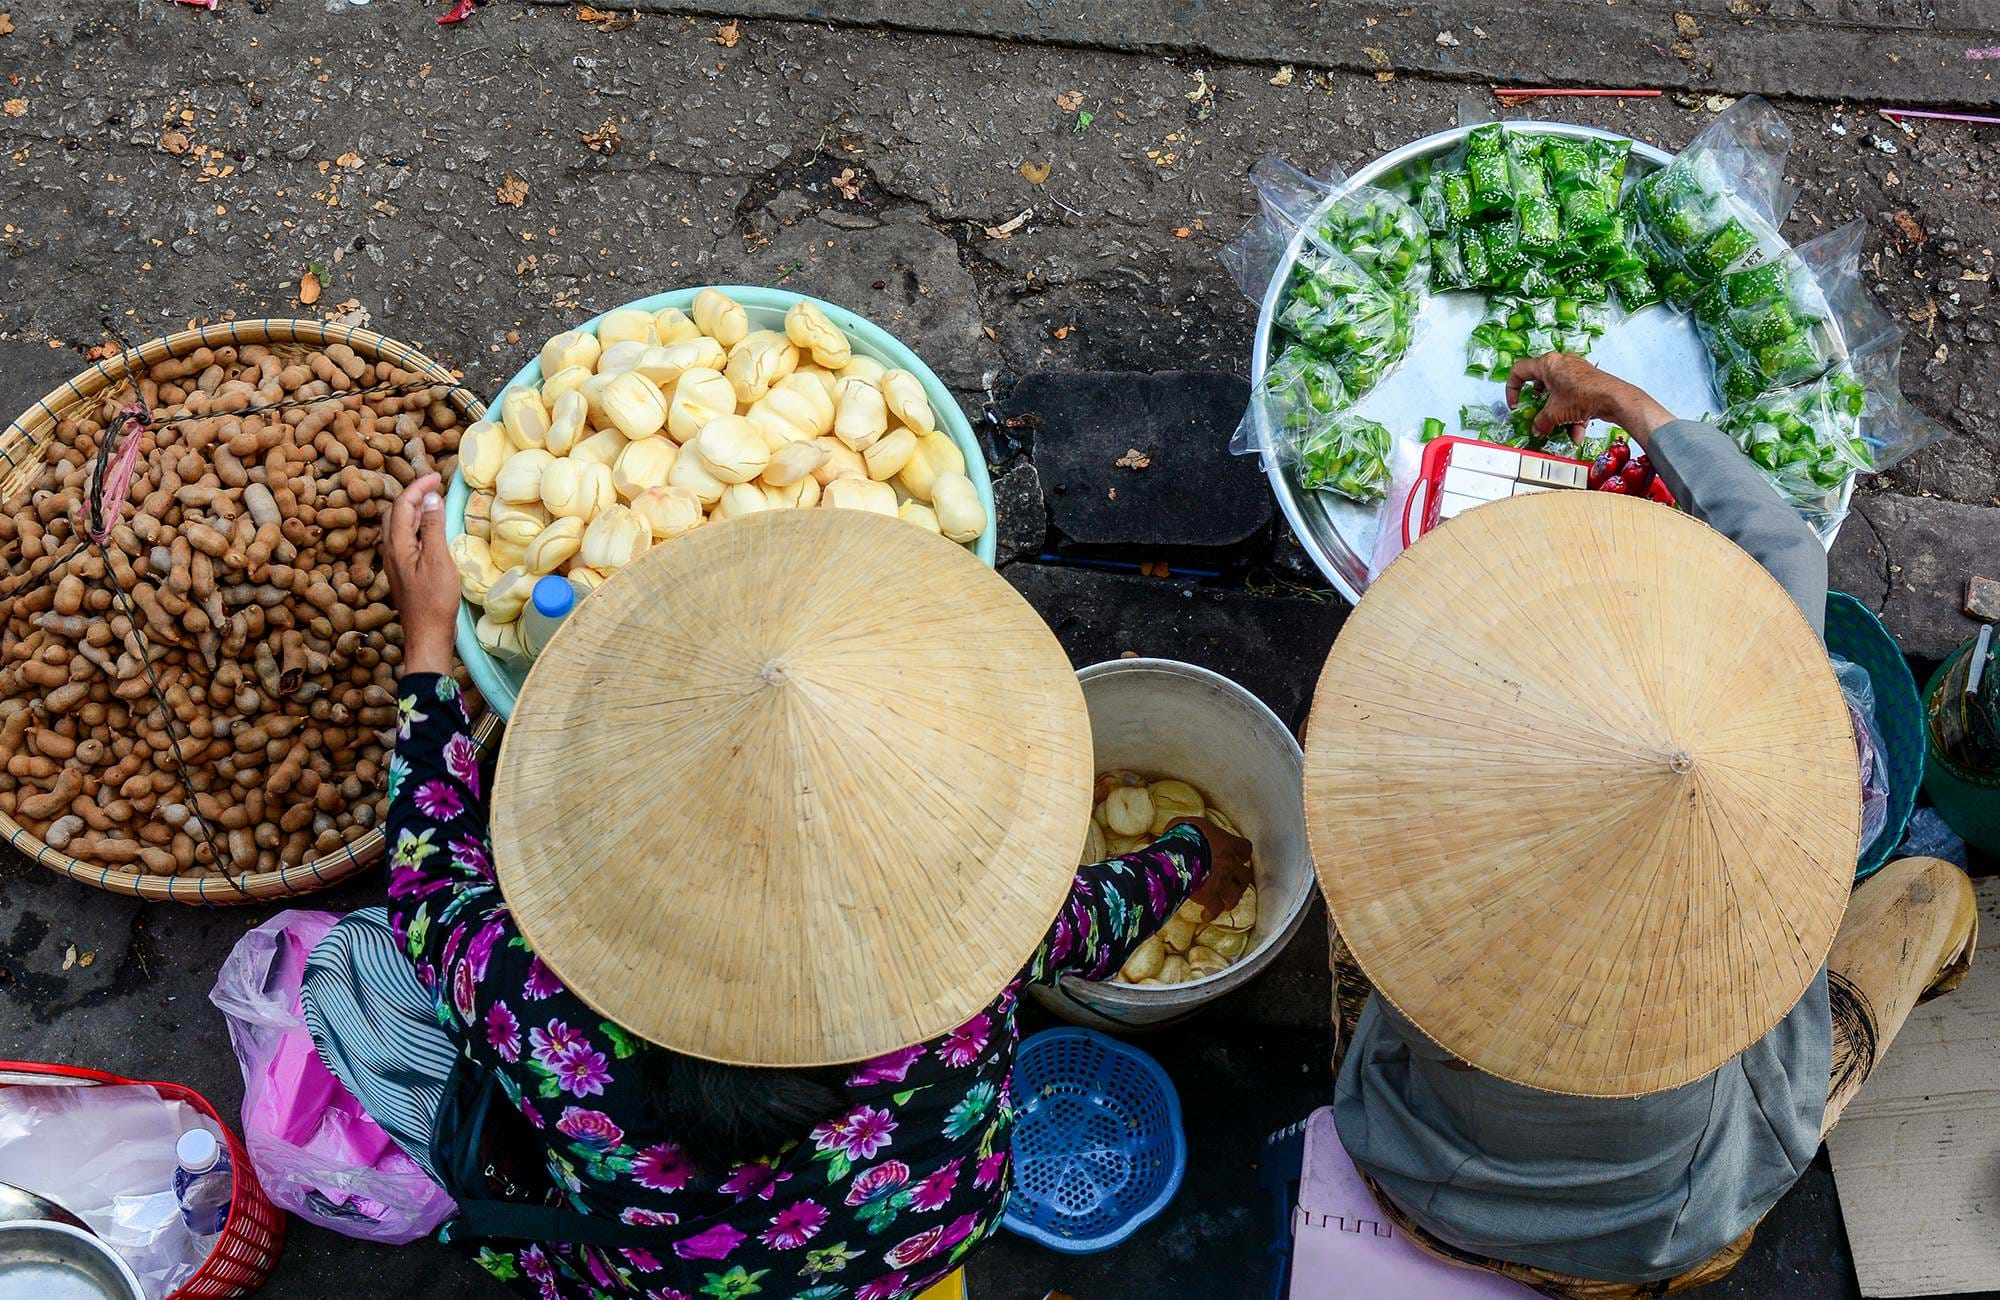 ho-chi-minh-city-vietnam-street-food-vendors-baskets-cover